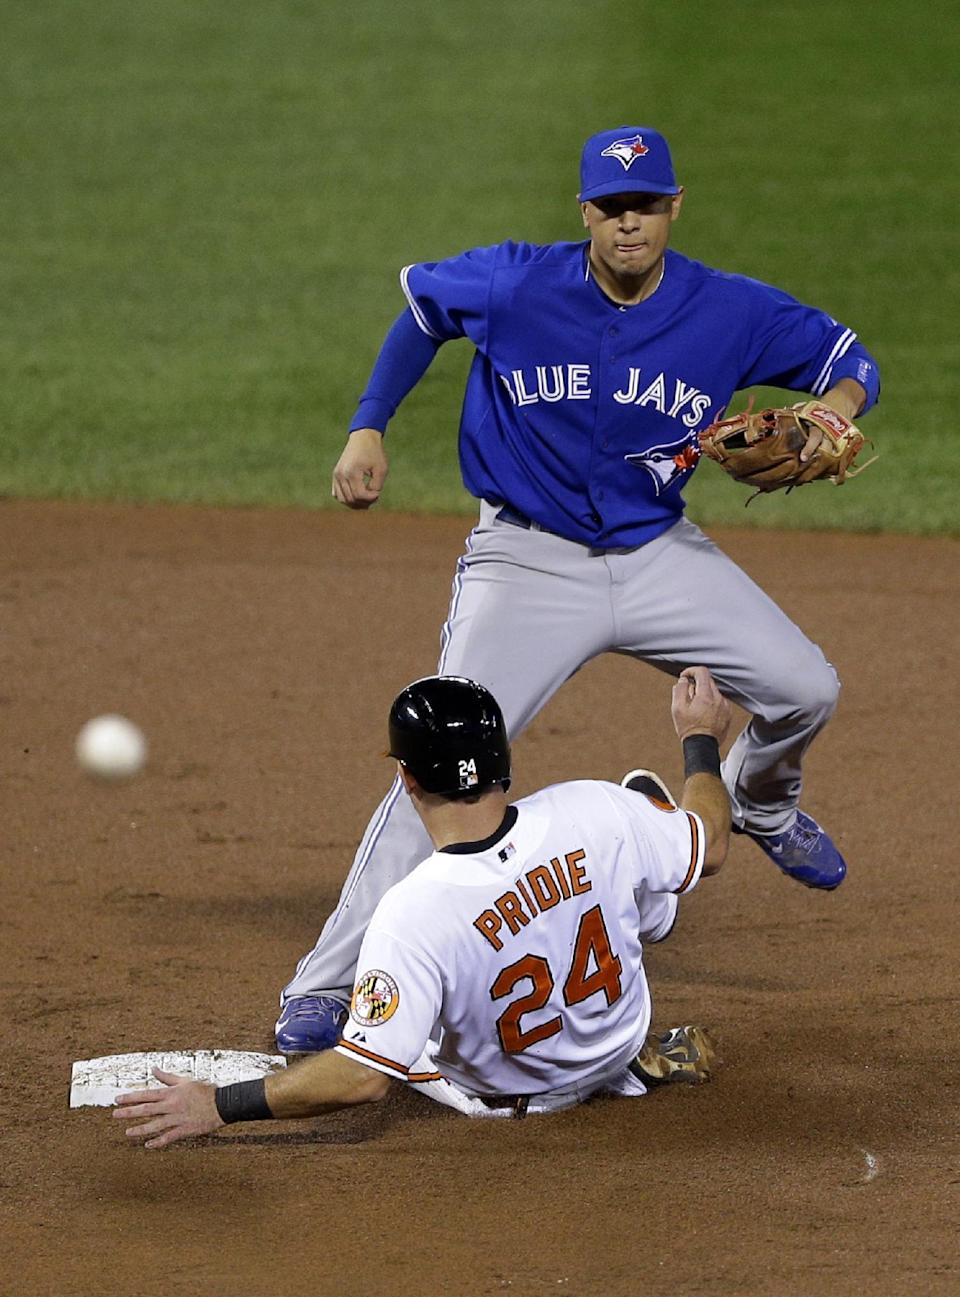 Gonzalez, Wieters lead Orioles past Blue Jays 3-2